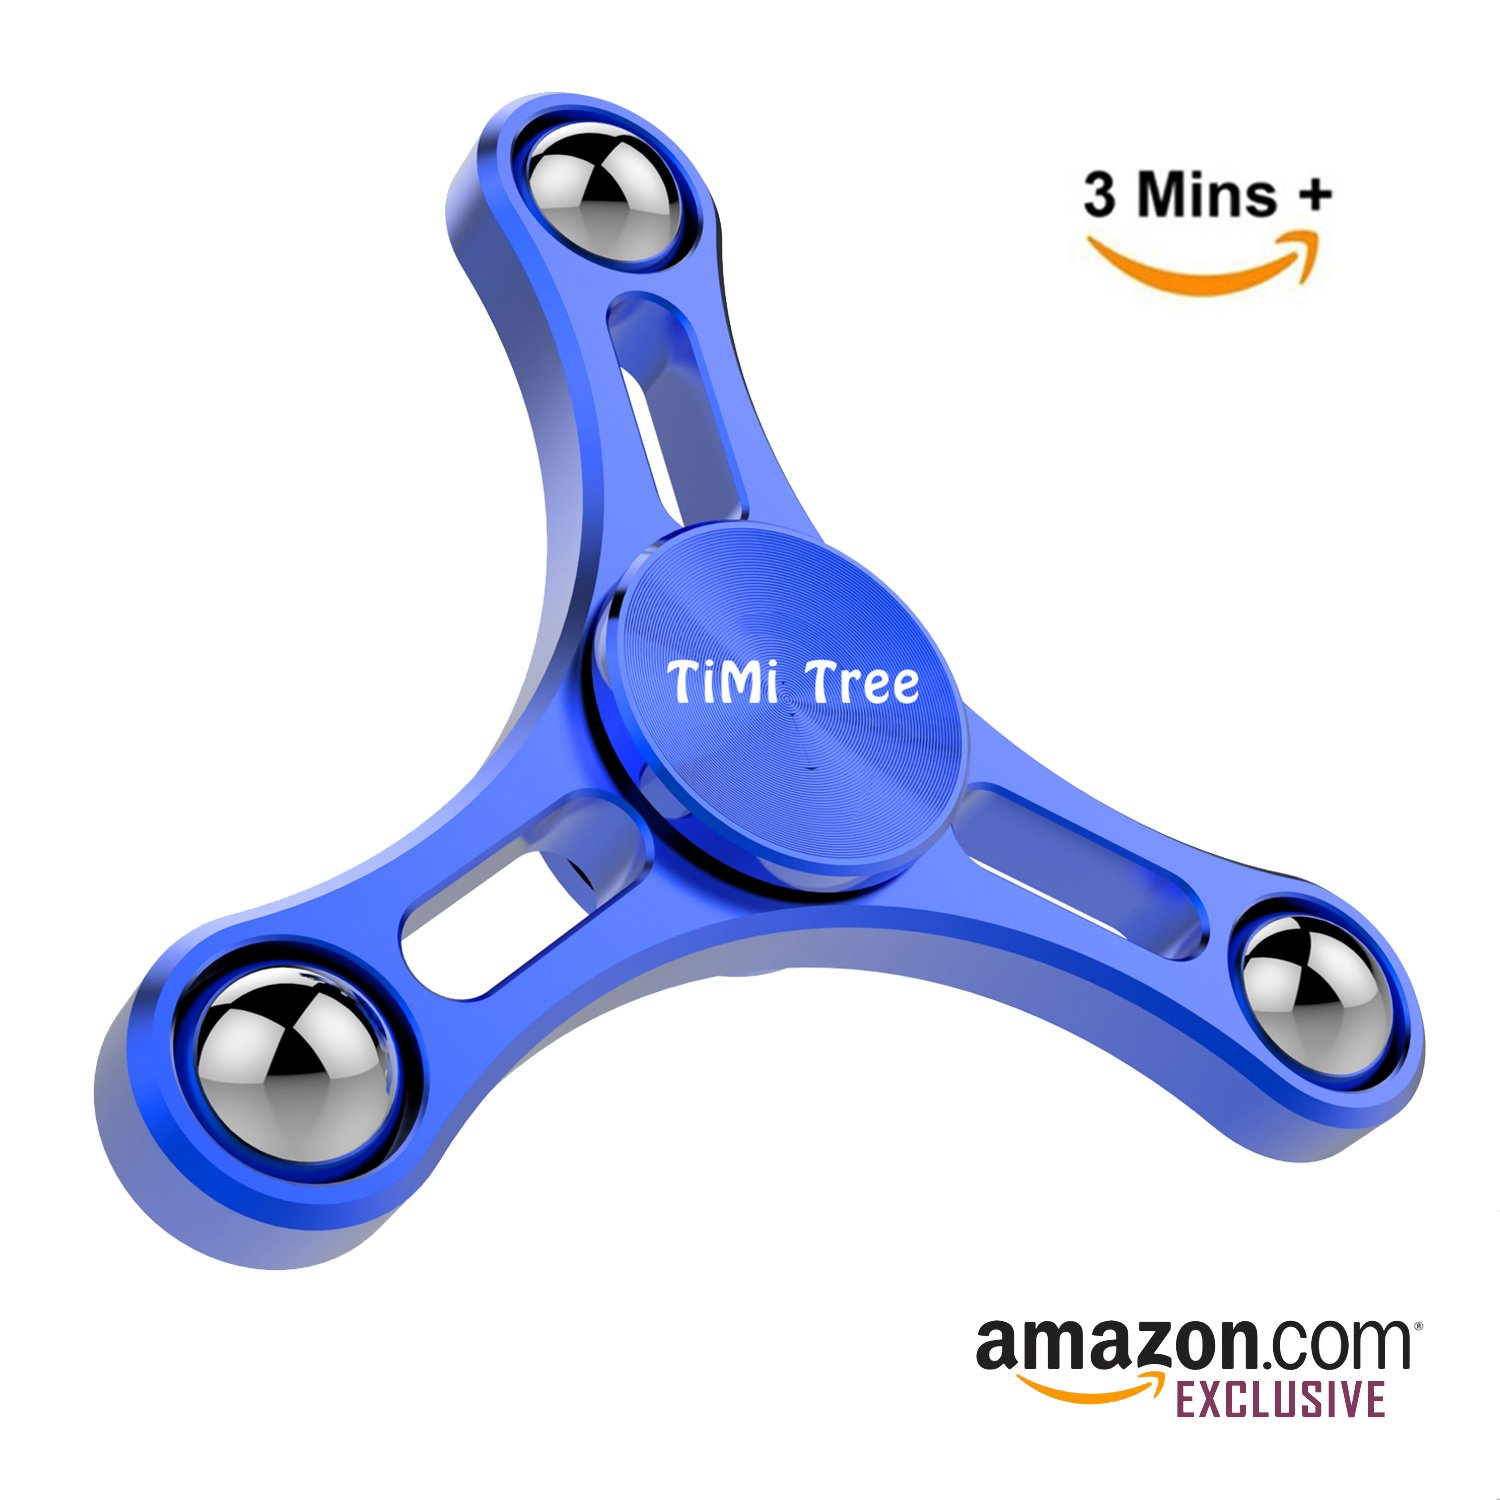 Fidget Tri-Spinner Toy Novelty Spinning Top Pressure Relief Gadget Newest Design Balance System Min 2 mins Spinning - by TiMi Tree (Blue)